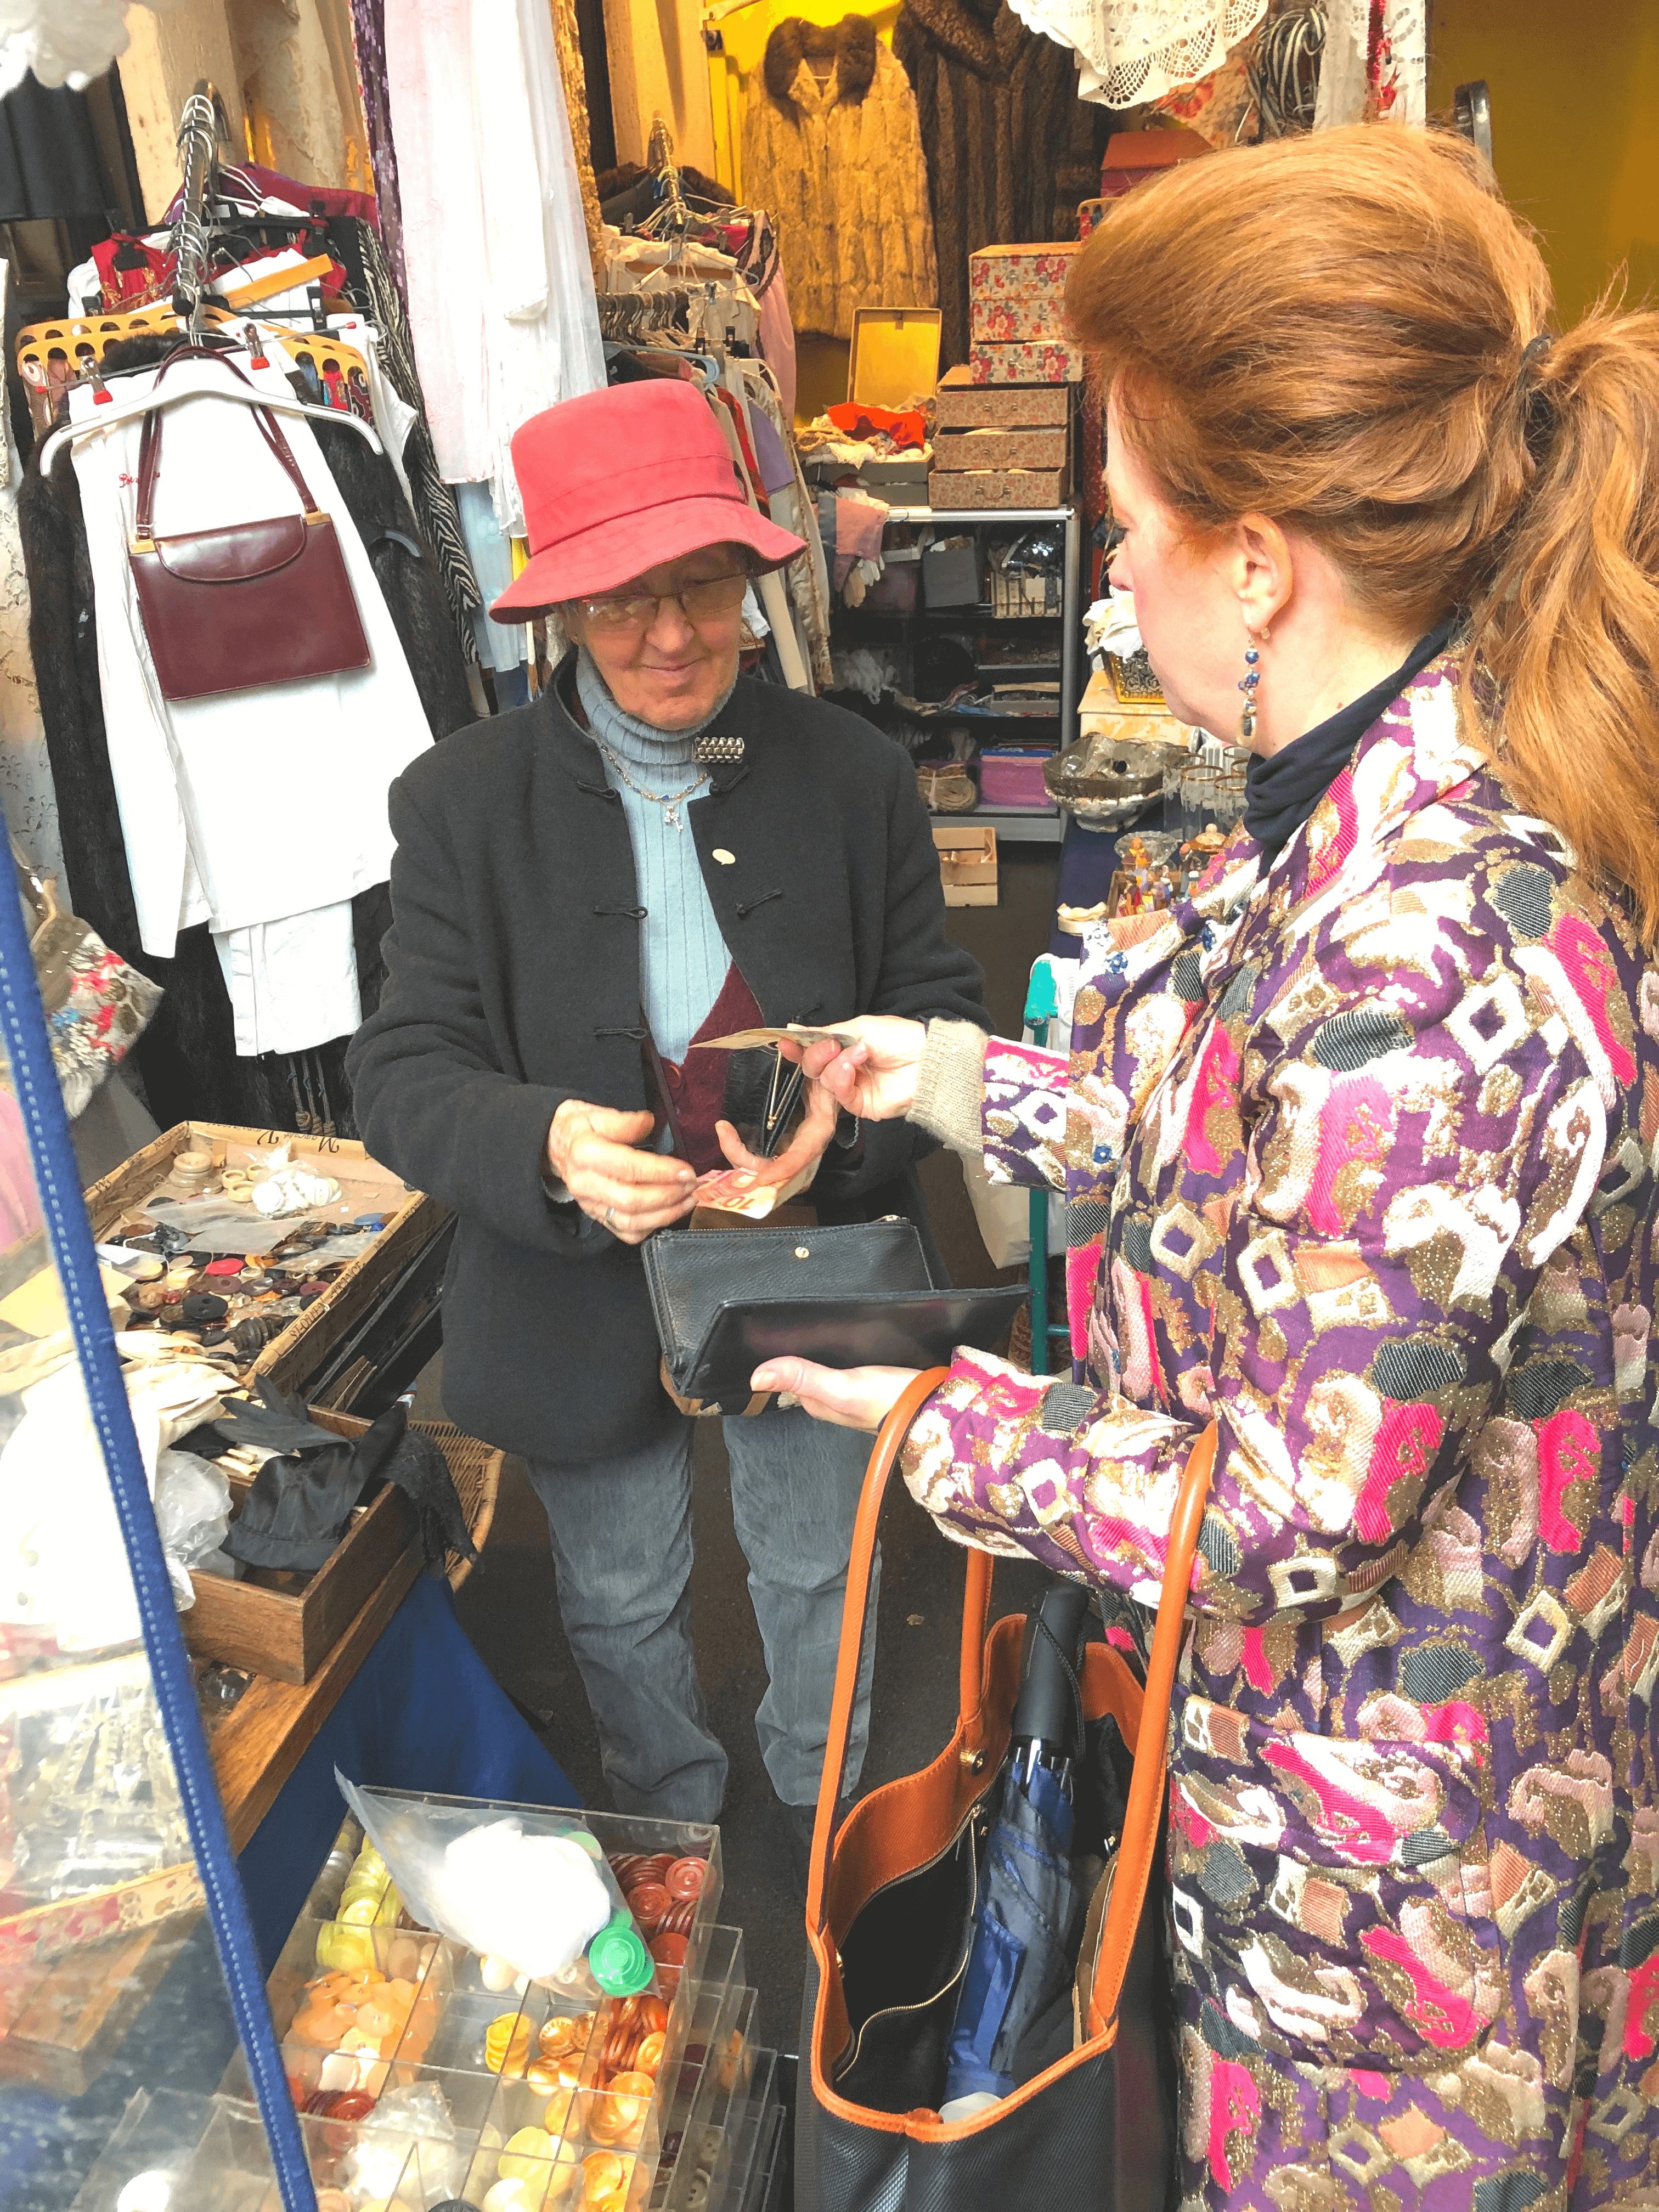 The Curious Cowgirl buying Vintage buttons at the Paris Flea Market